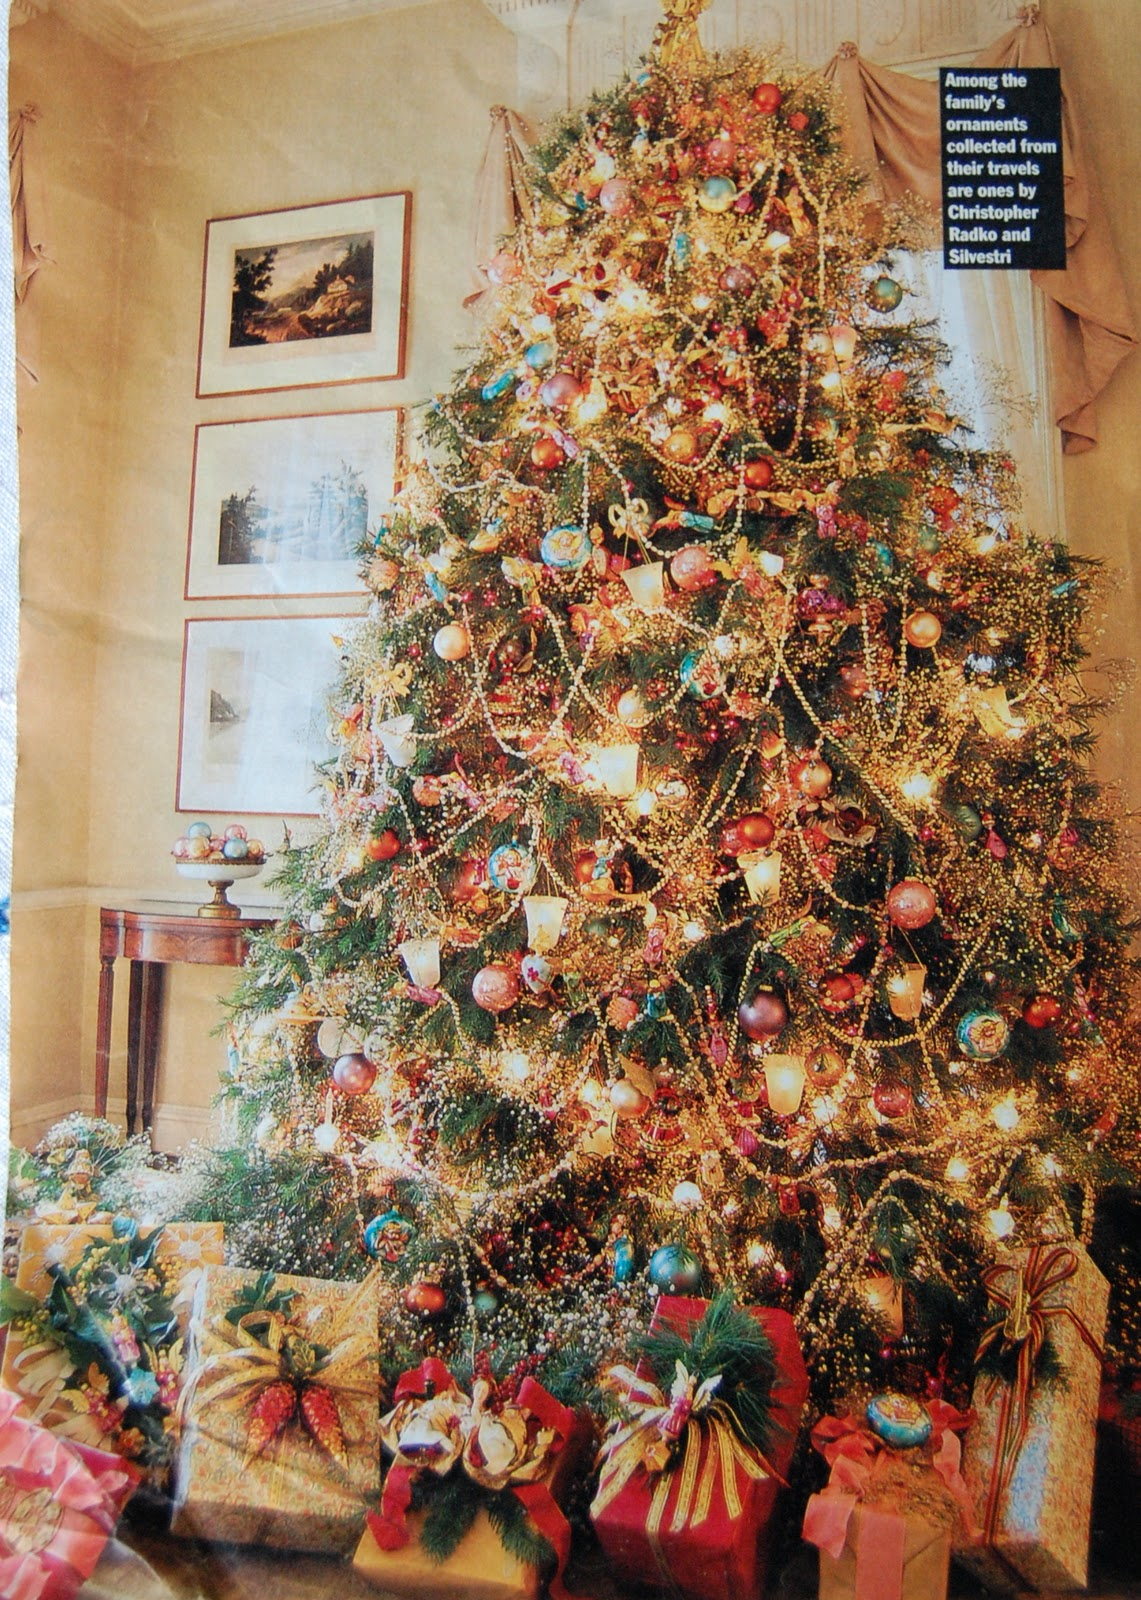 Christmas Trees Decorated Professionally With Presents